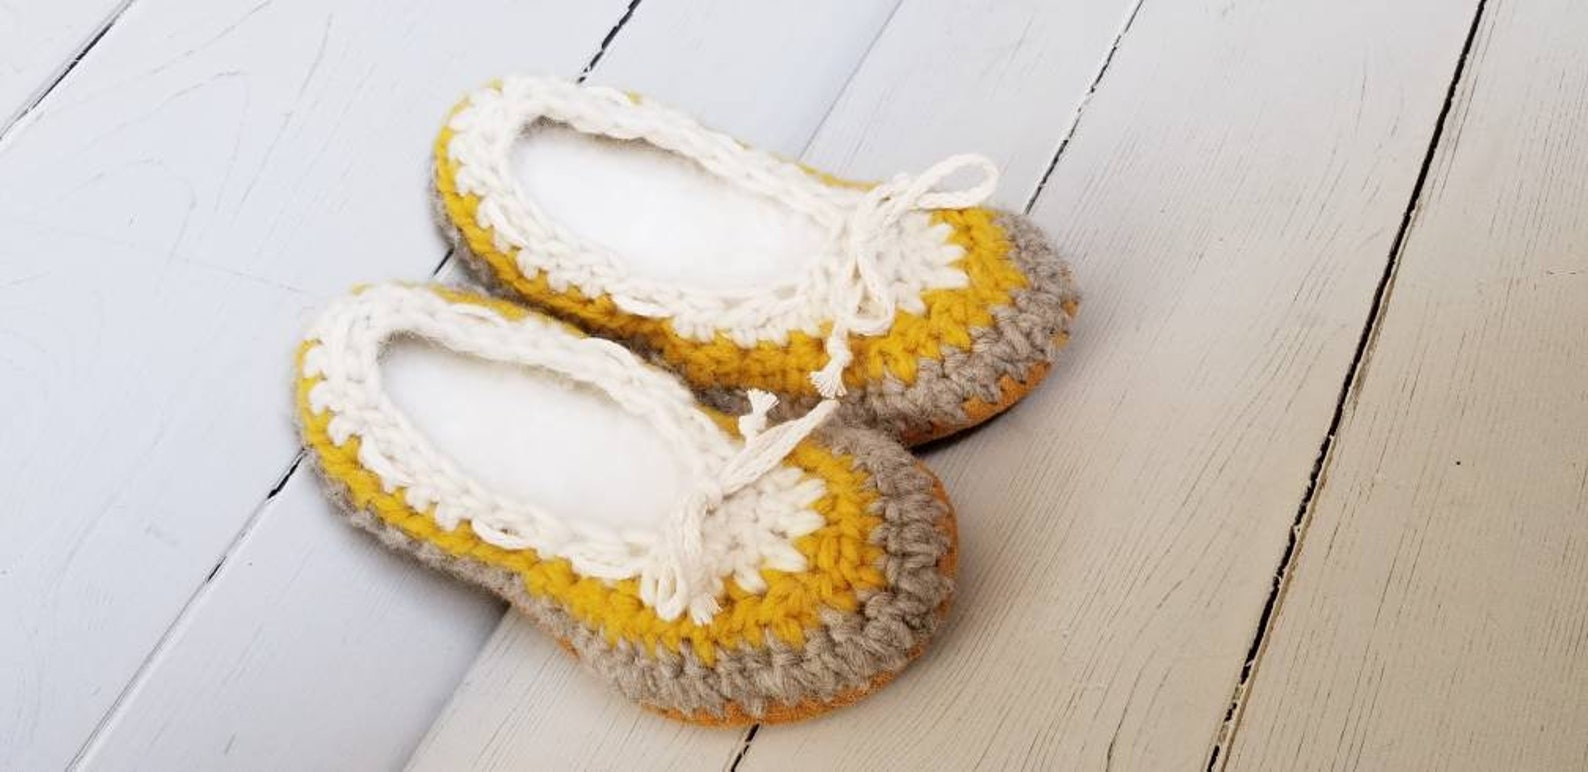 womens slippers, crochet slippers, ladies slippers, spring/summer slippers, wool slippers, slip on slippers, ballet slippers, ec